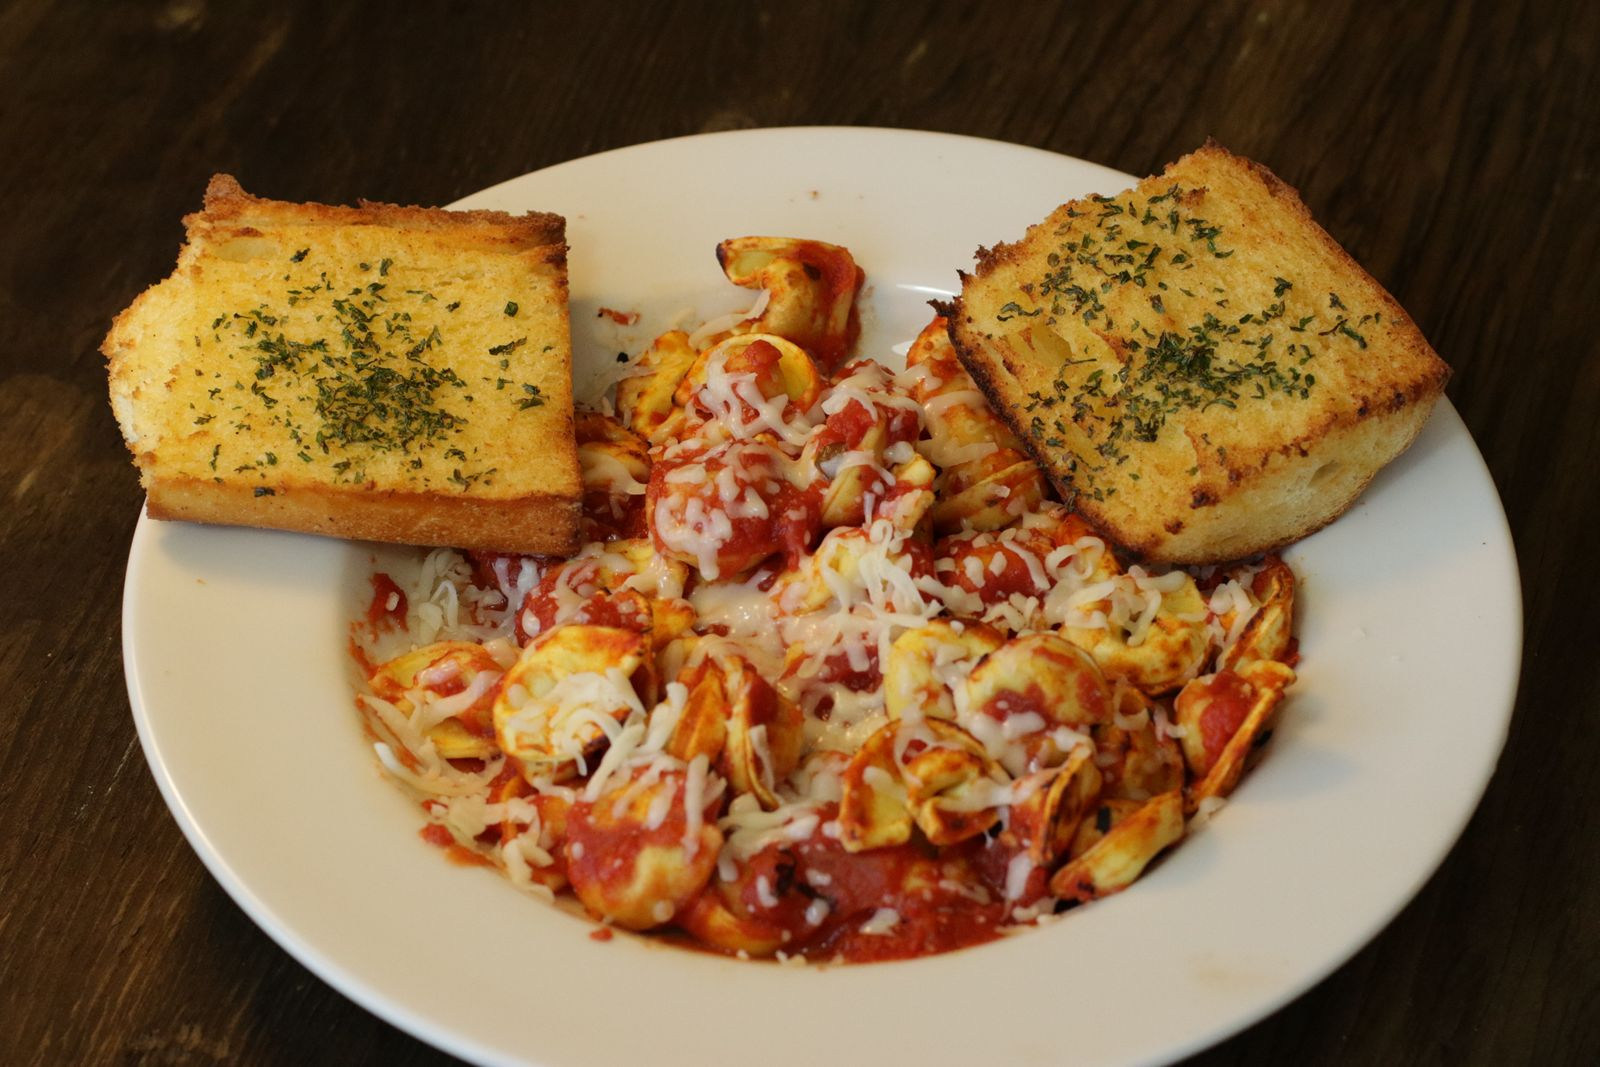 Straw Hat Pizza Announces New Straw Hat Pizza Grille to be located in Clovis, CA